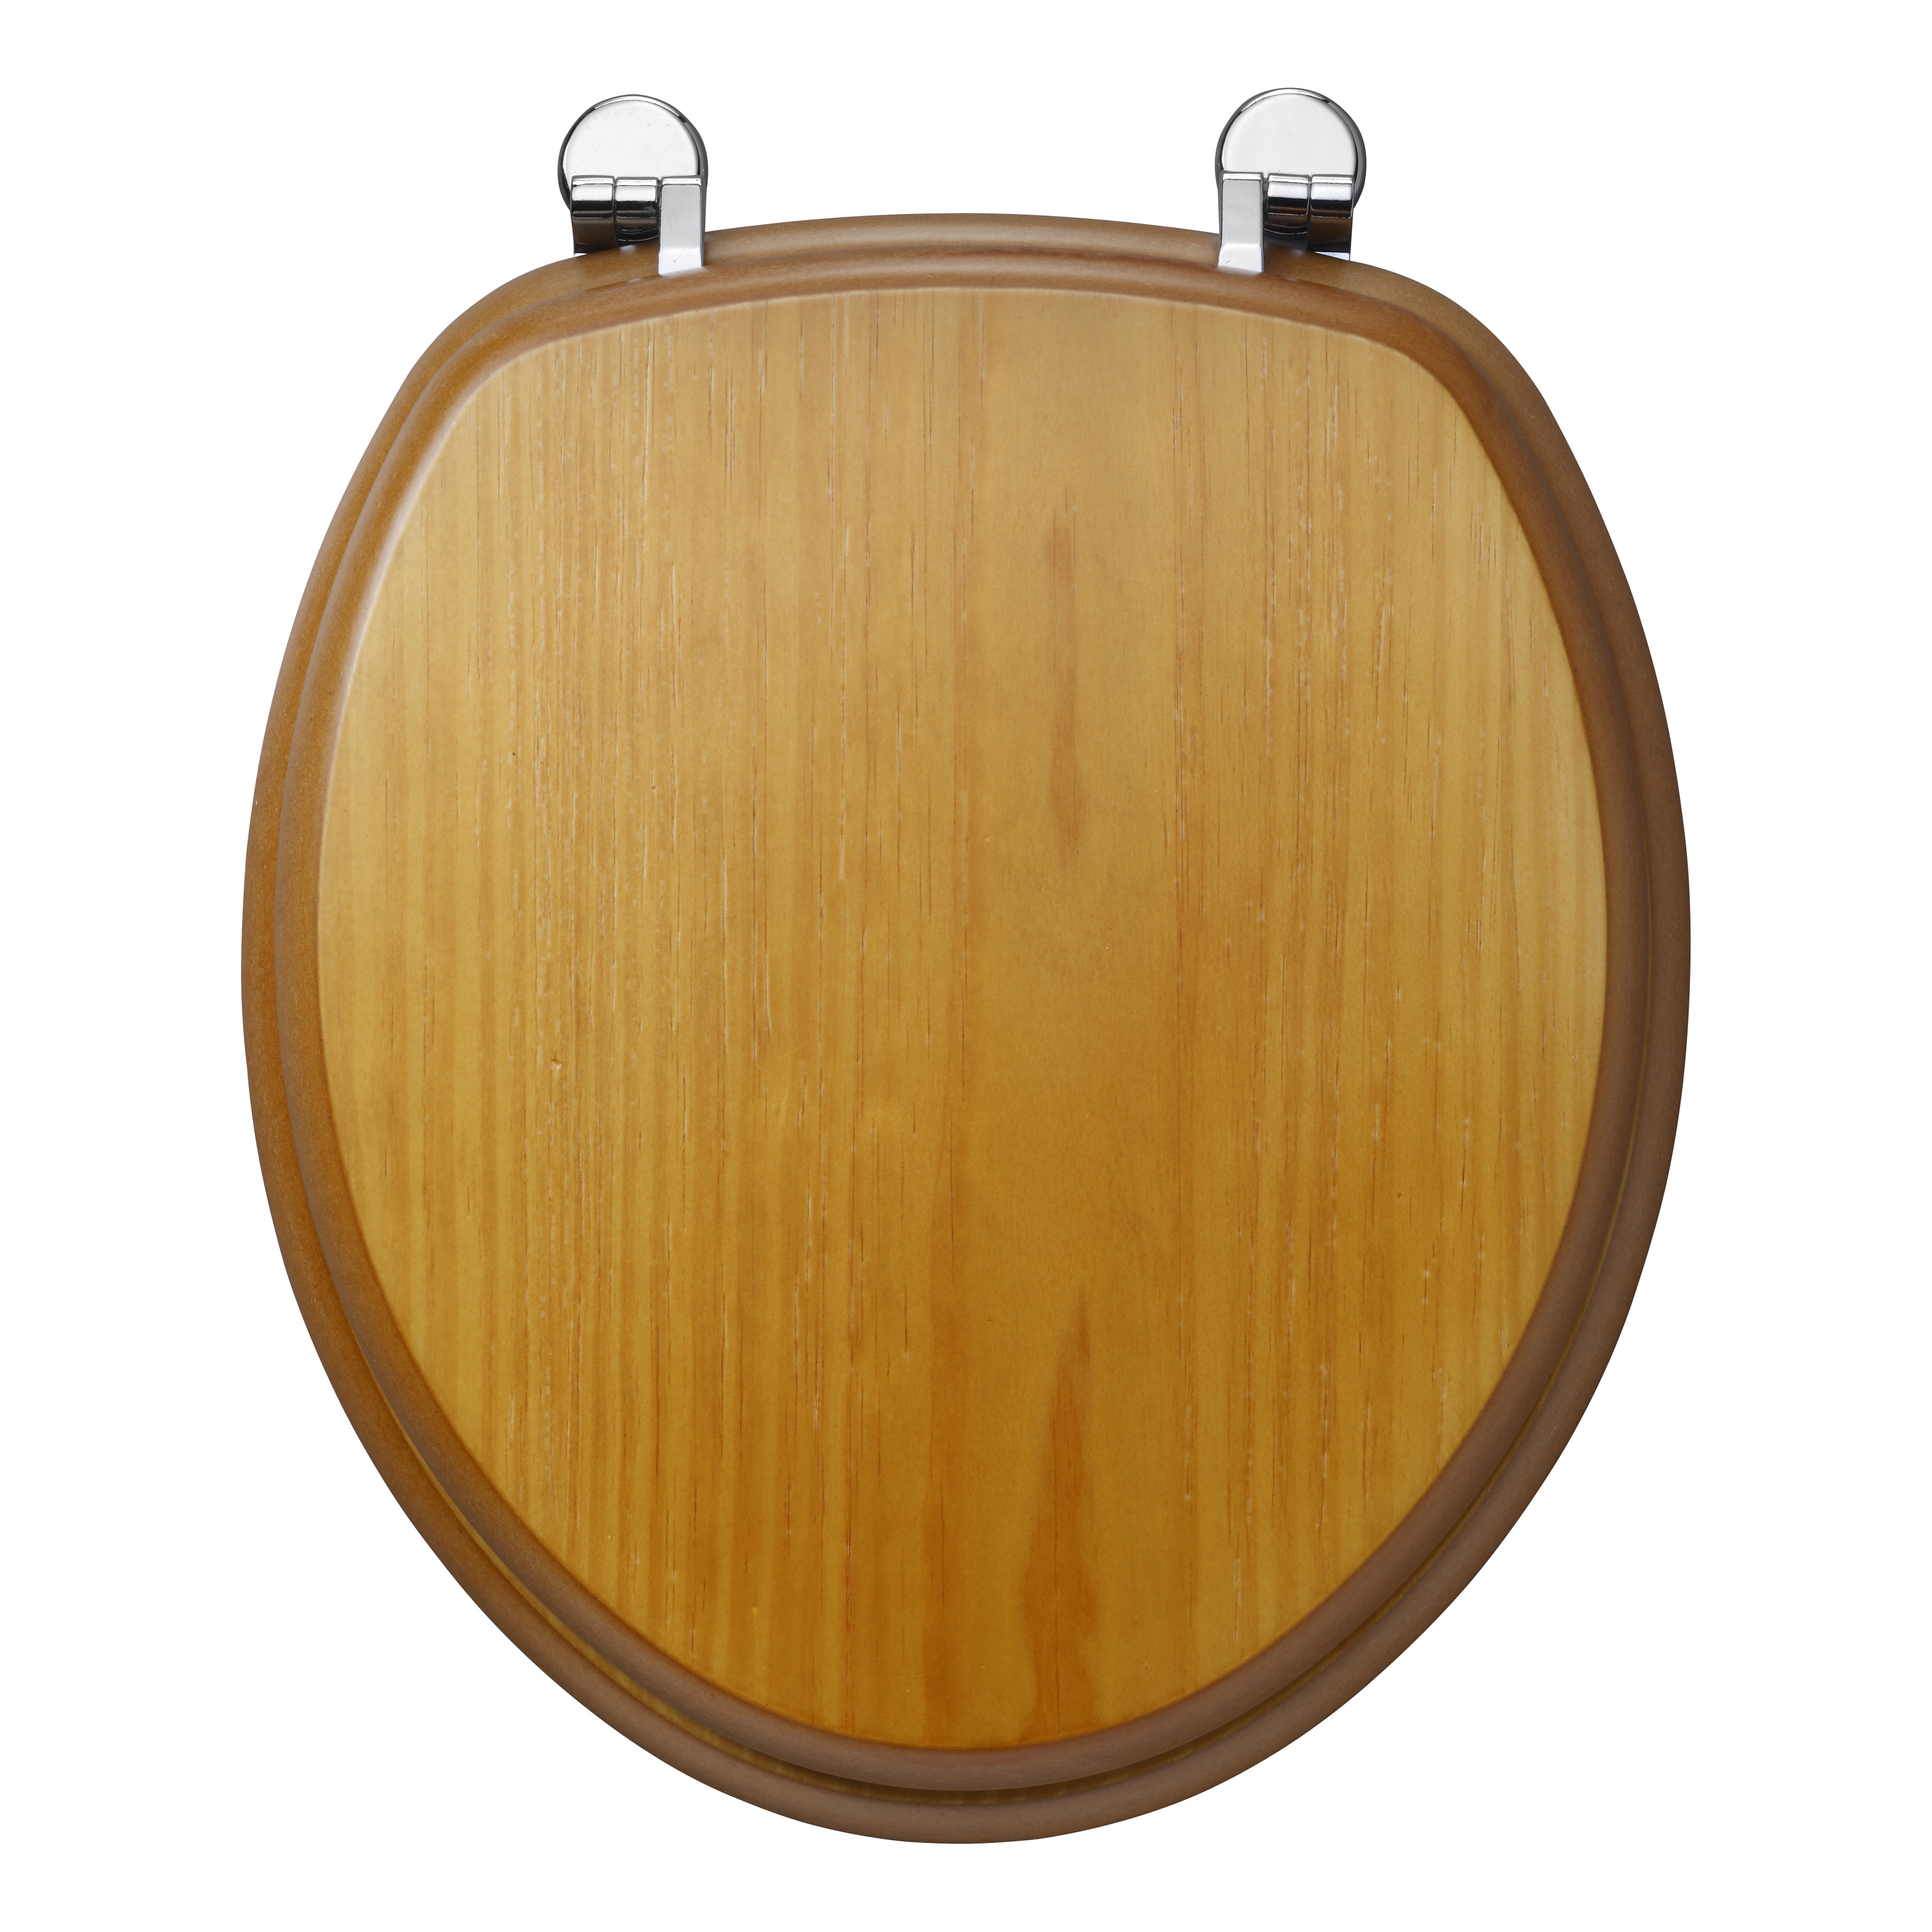 Traditional Seat Cover In Pine Toilet Seats Toilets Bluebook